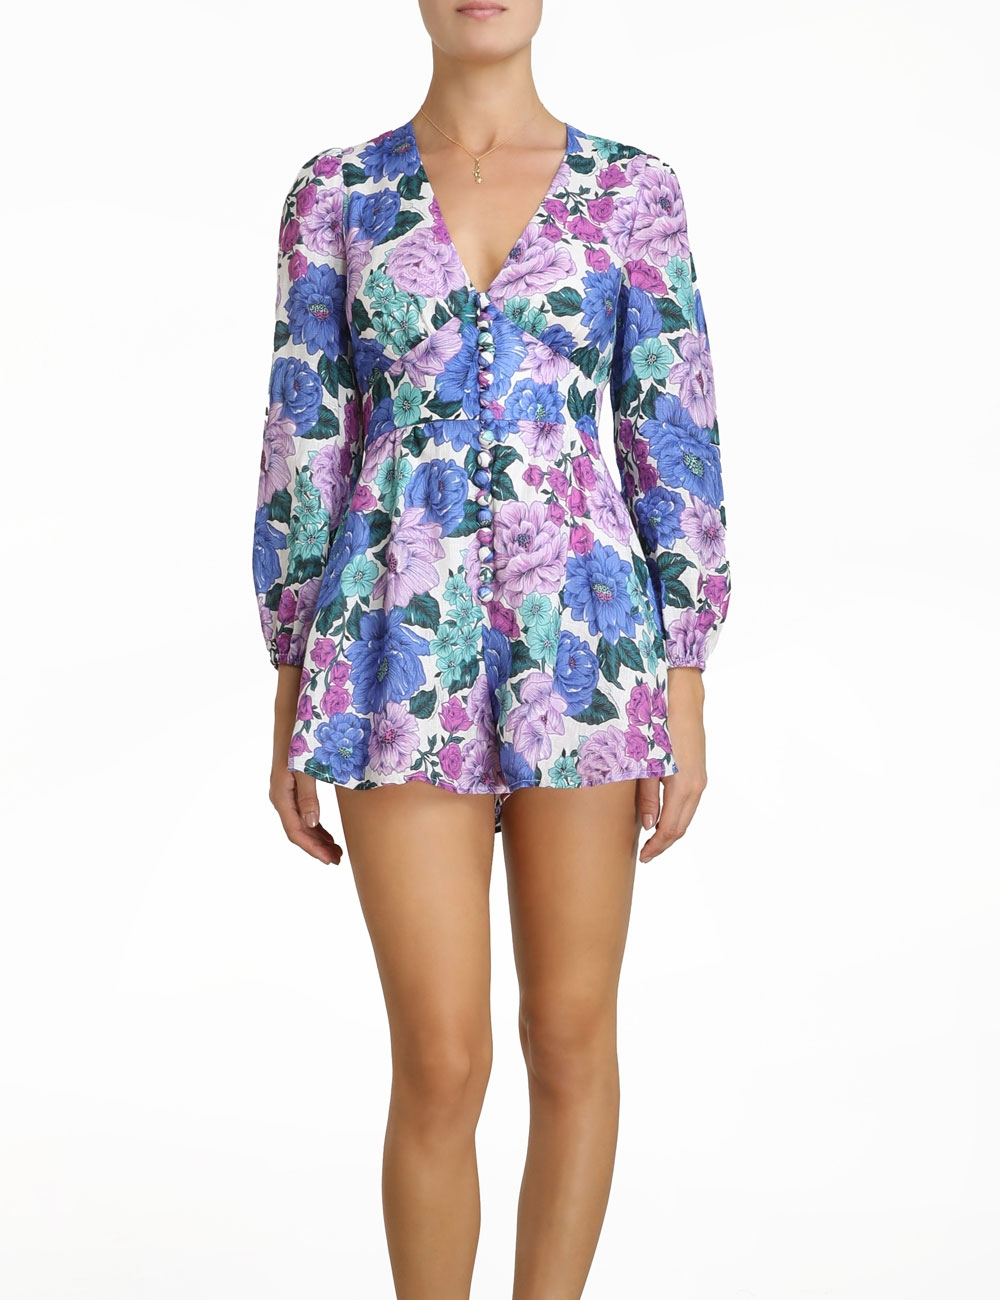 Poppy Plunge Playsuit